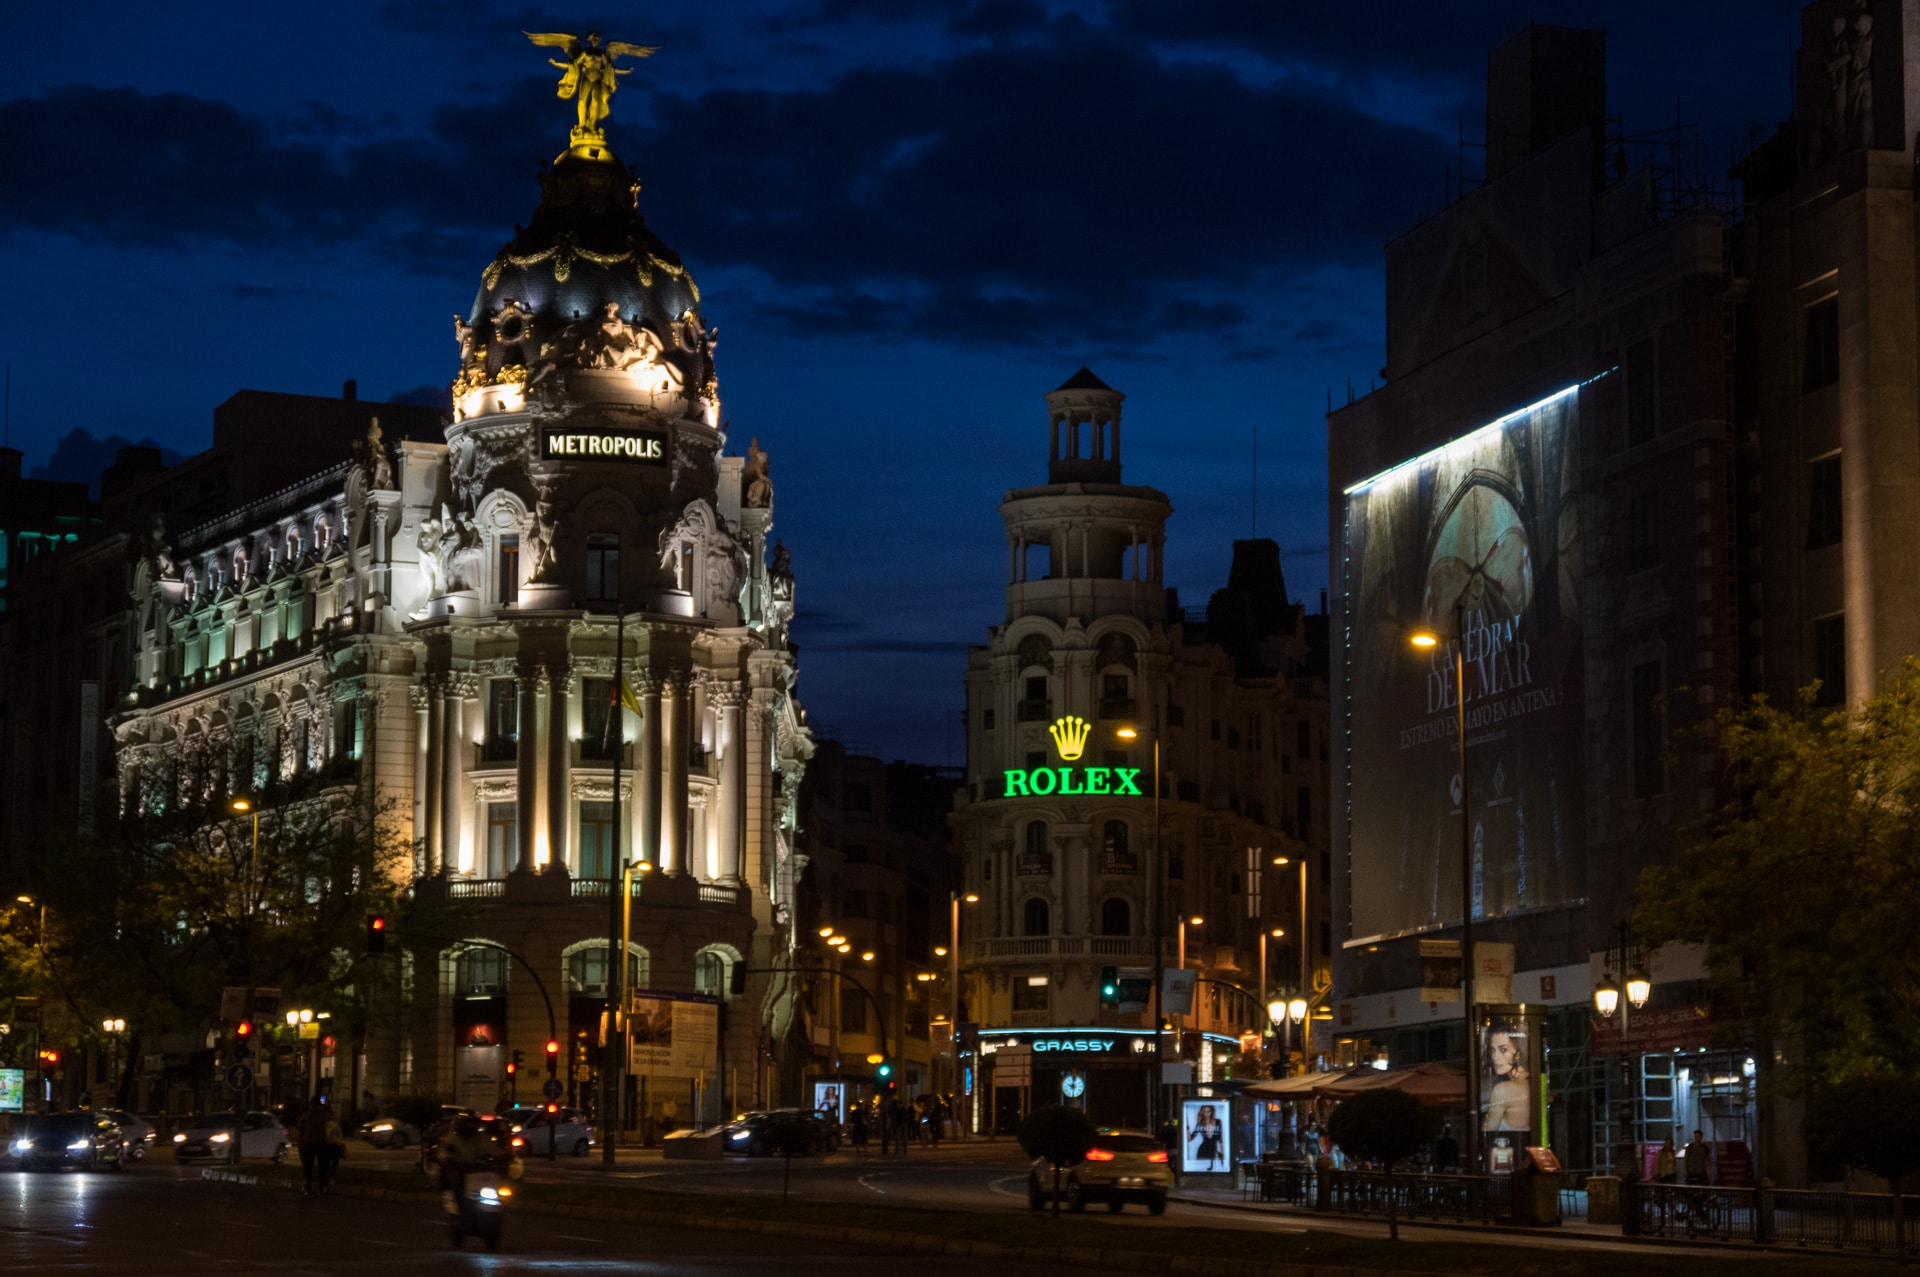 Metropolis building on Gran via